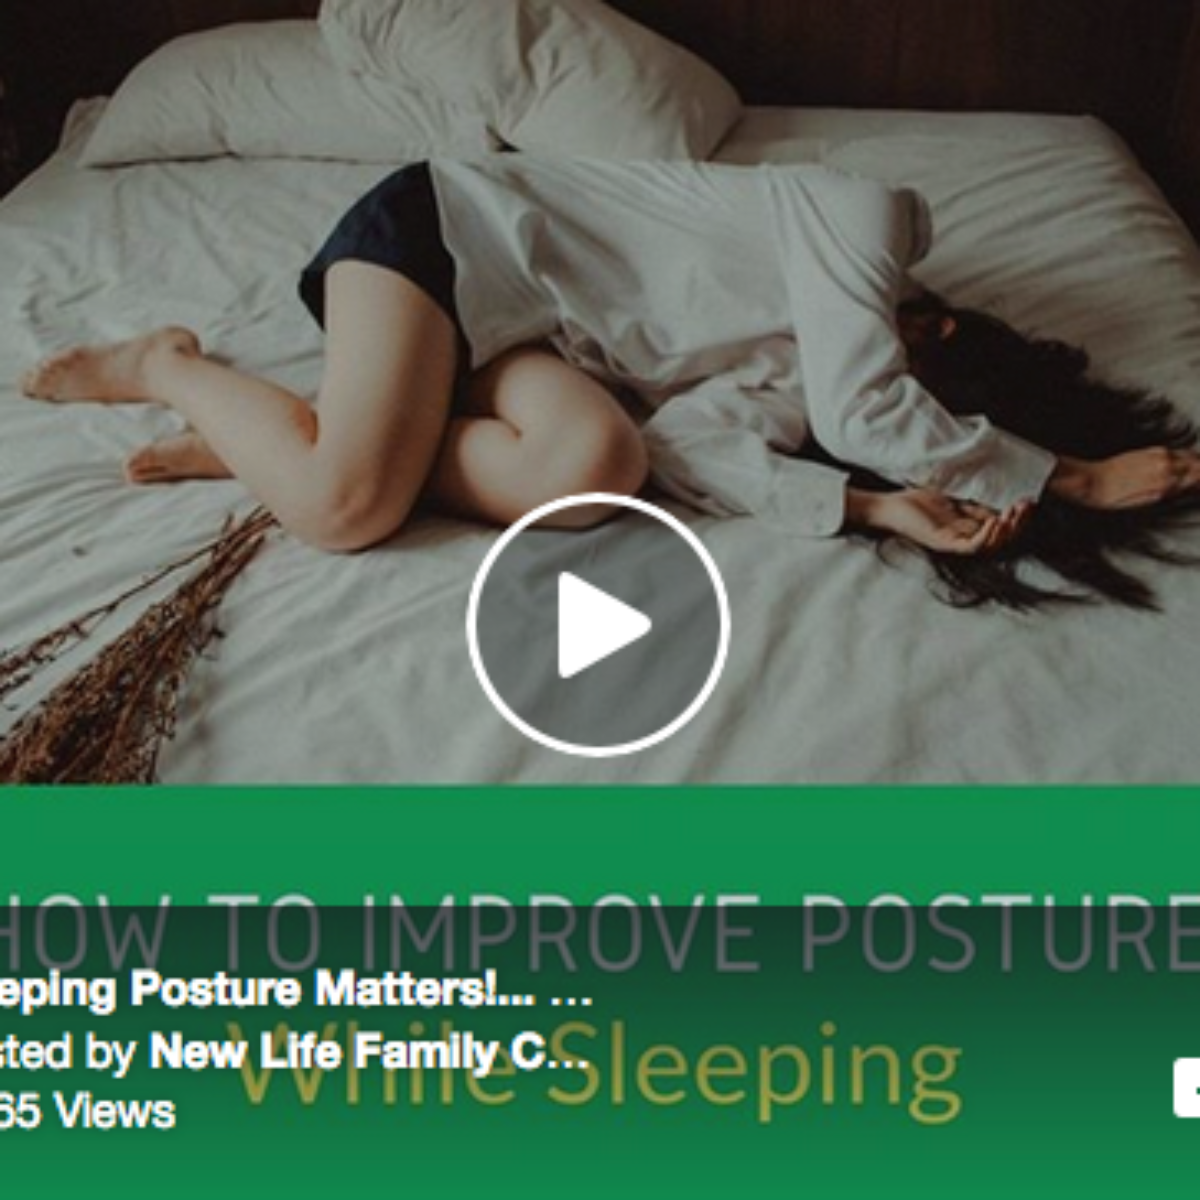 How To Improve Posture While Sleeping